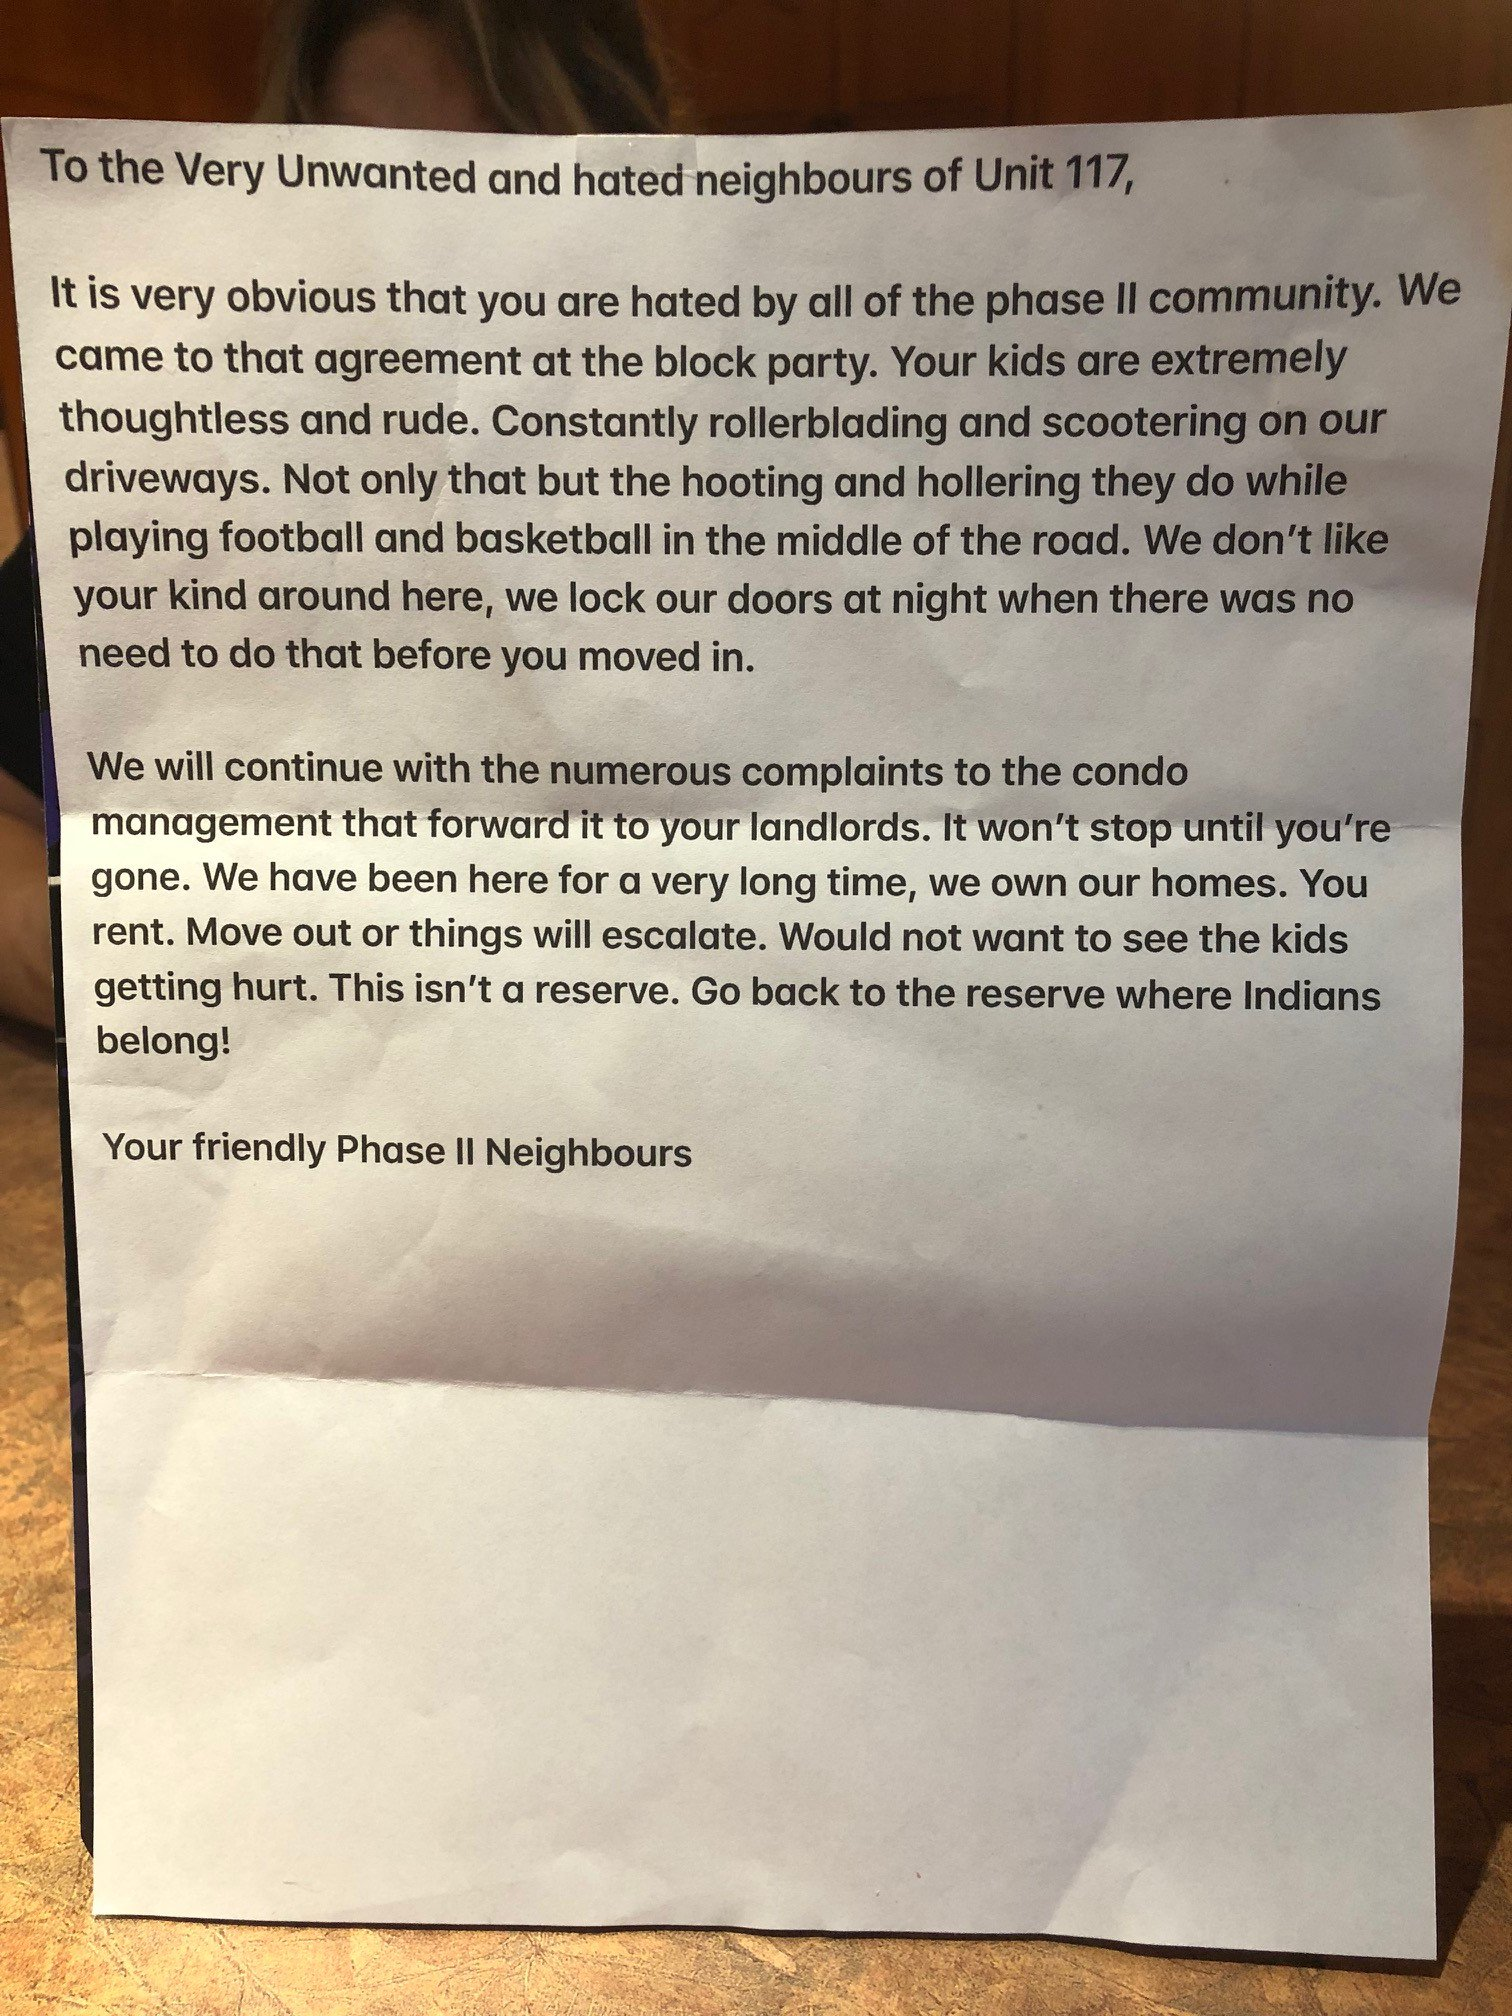 ST. ALBERT FAMILY DECIDES TO MOVE AFTER RECEIVING A THREATENING RACIST LETTER